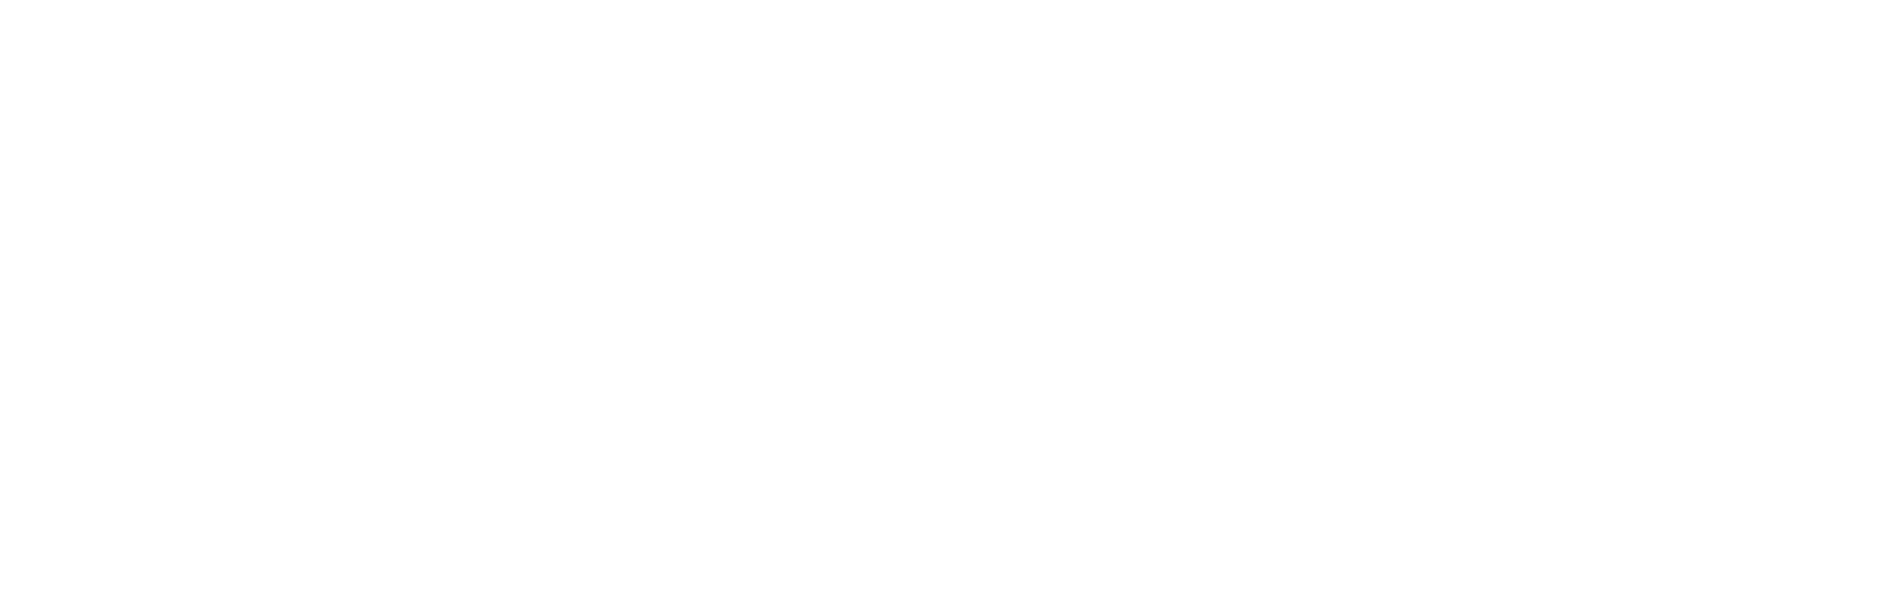 Compass White Logo for SQuareSpace.png